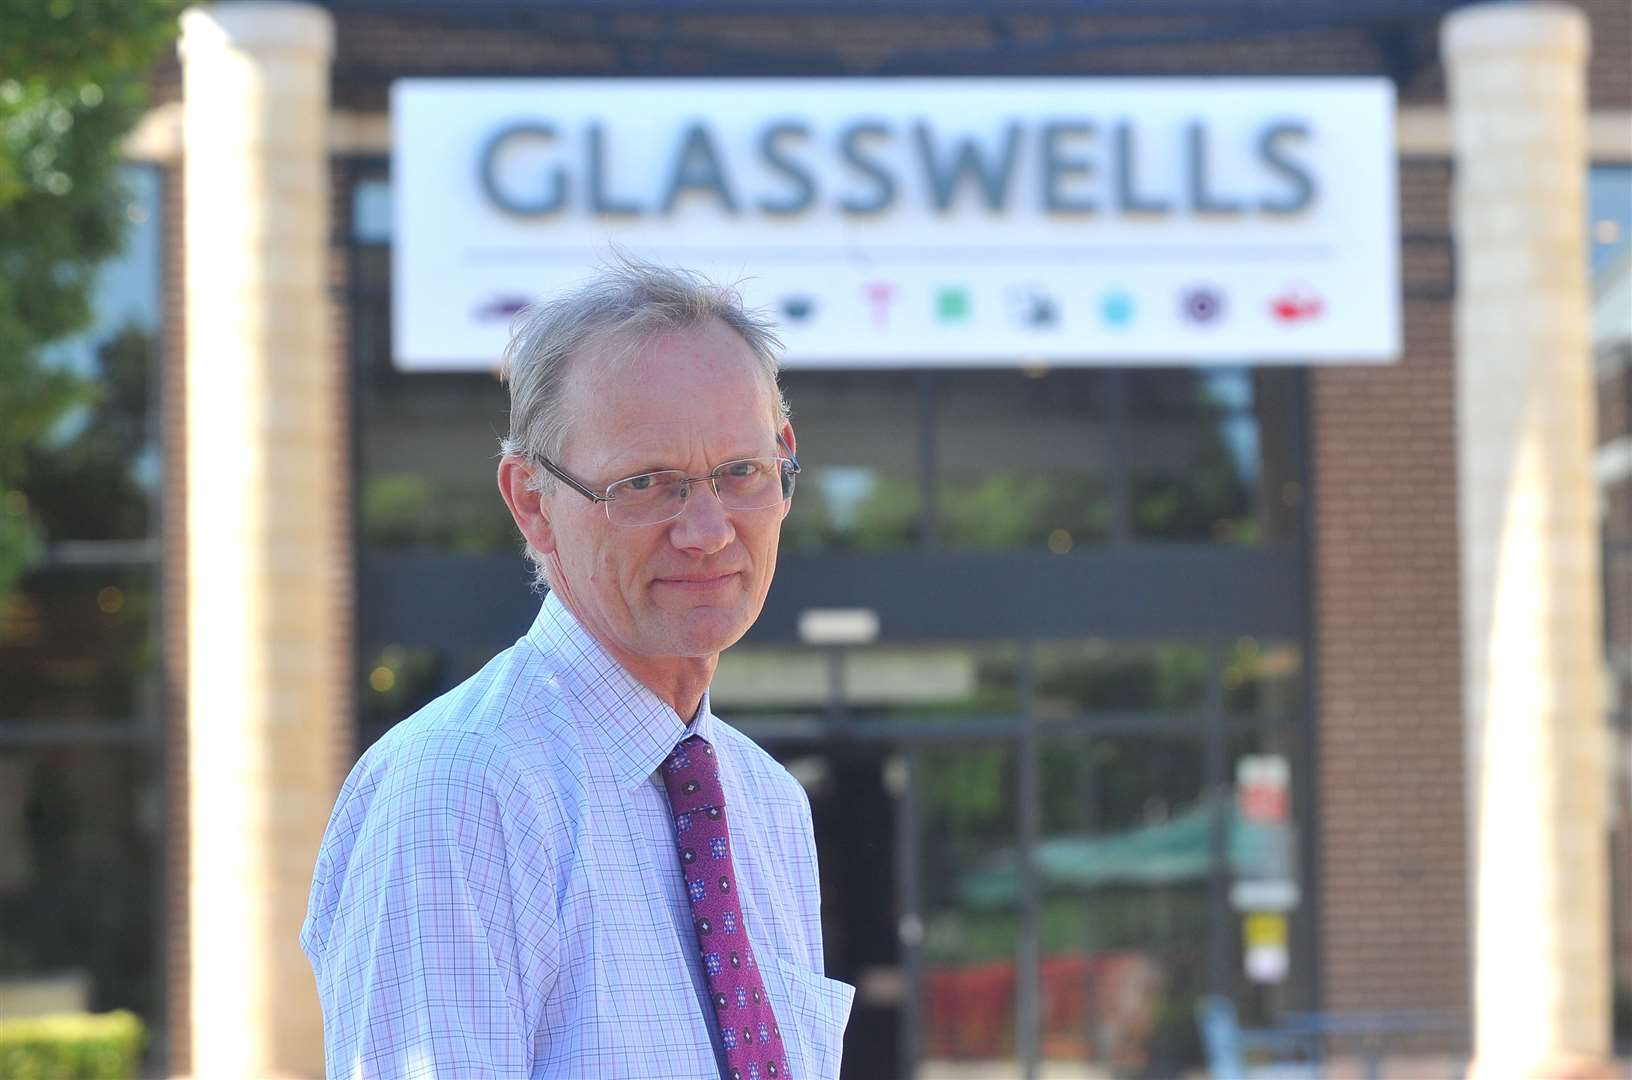 Paul Glasswell, managing director of Glasswells, which is celebrating its 75th anniversary